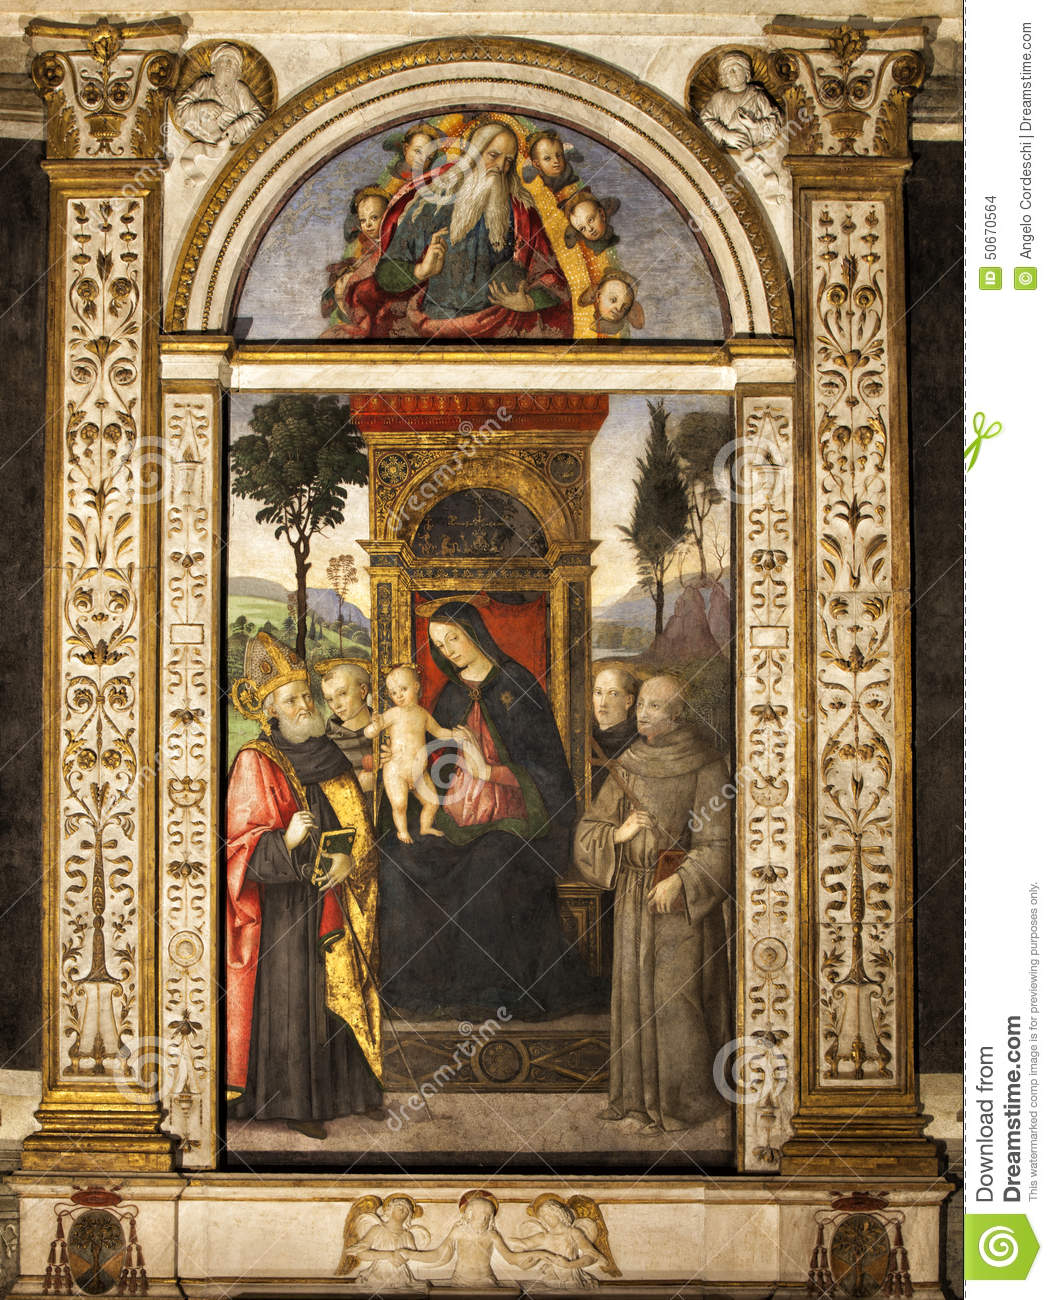 pinturicchio madonna und kind inthronisiert mit heiligen santa maria del popolo sch ne alte. Black Bedroom Furniture Sets. Home Design Ideas